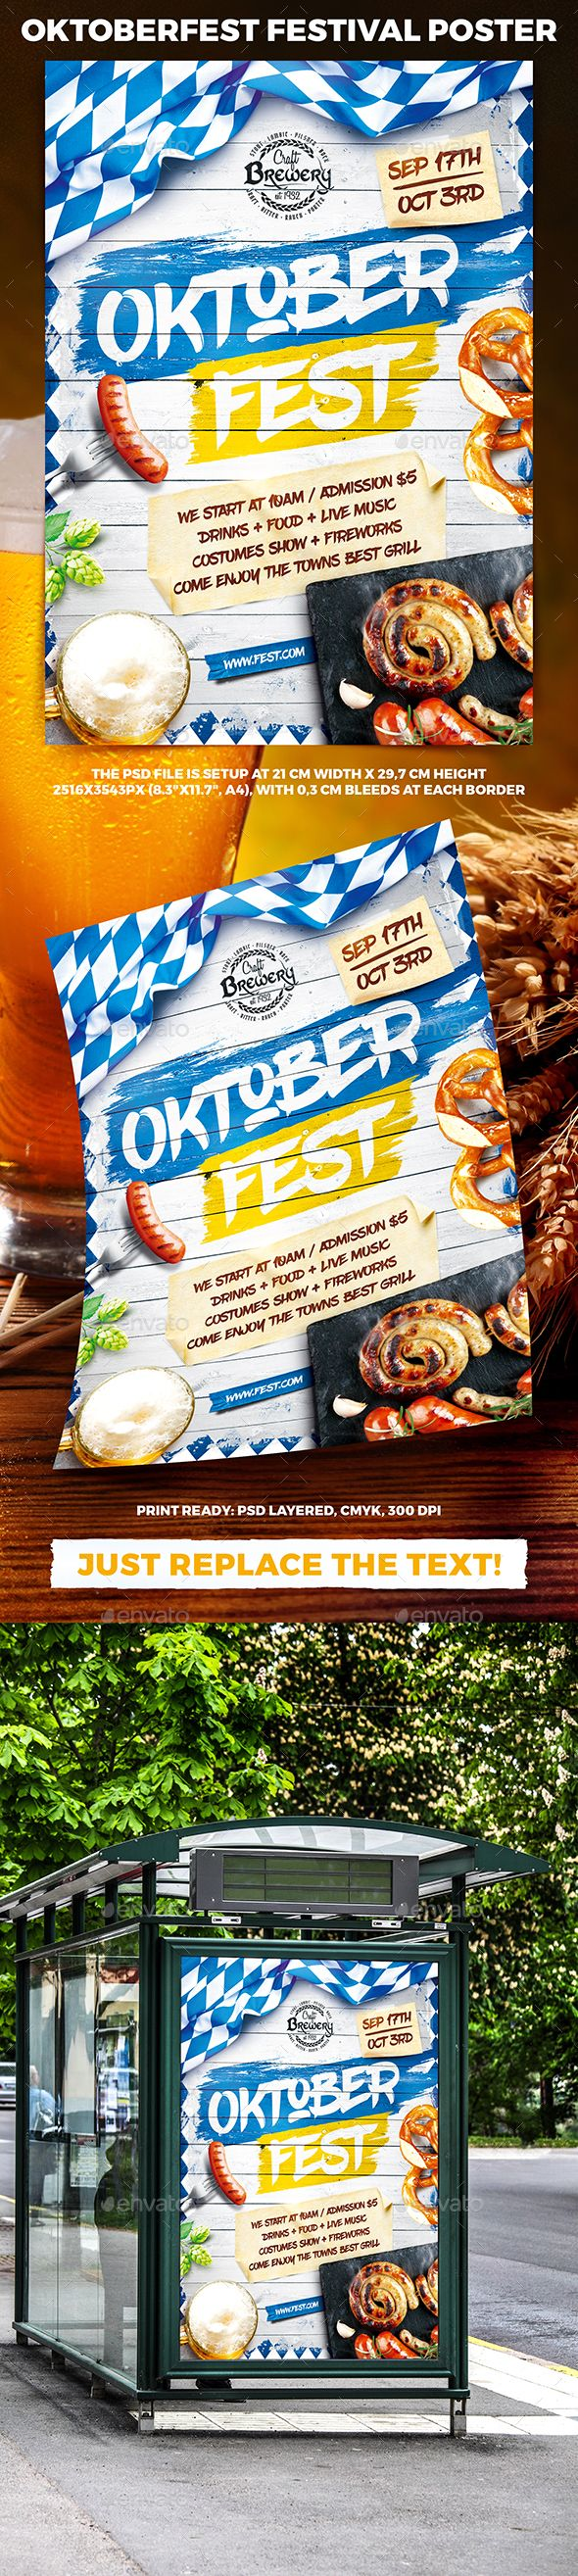 Oktoberfest Festival Poster Template PSD. Download here: https://graphicriver.net/item/oktoberfest-festival-poster-vol5/17342119?ref=ksioks